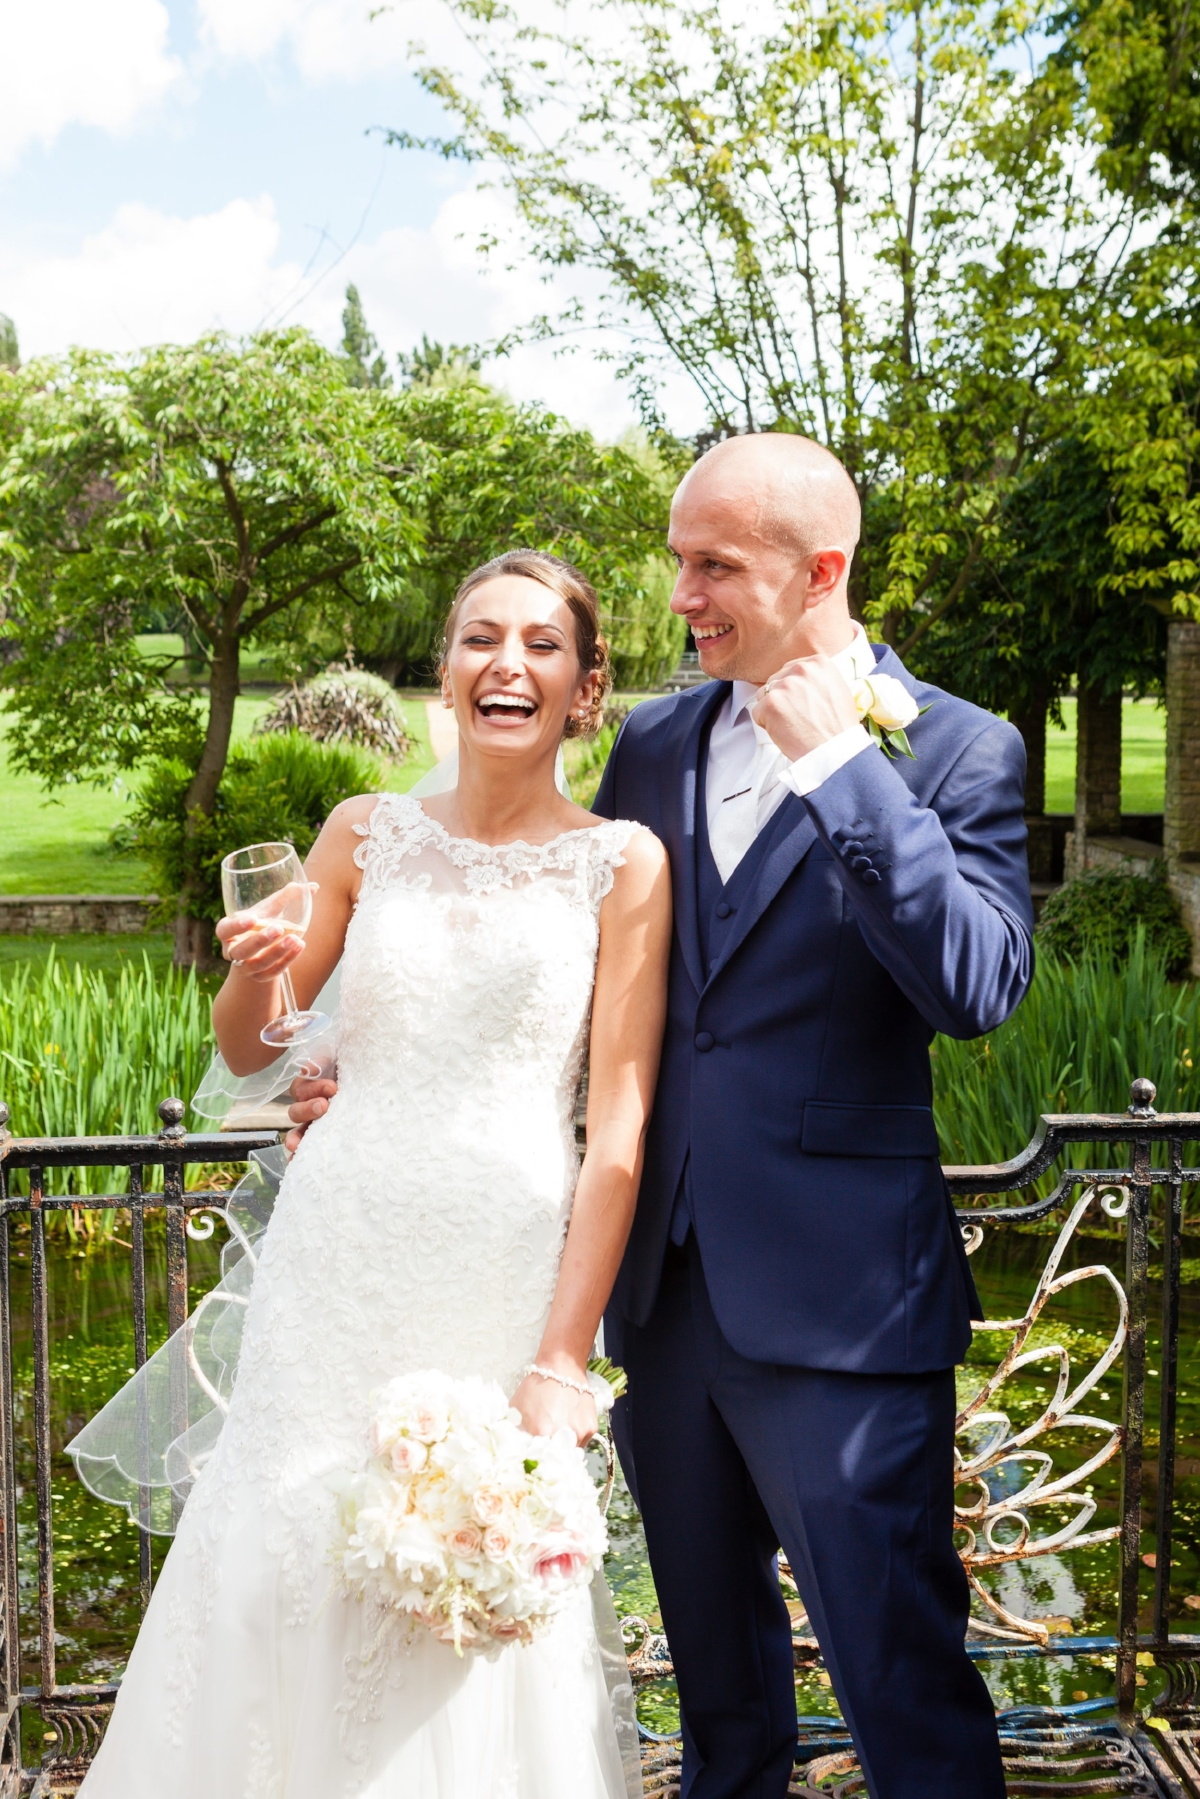 Bride and Groom's amazing reaction